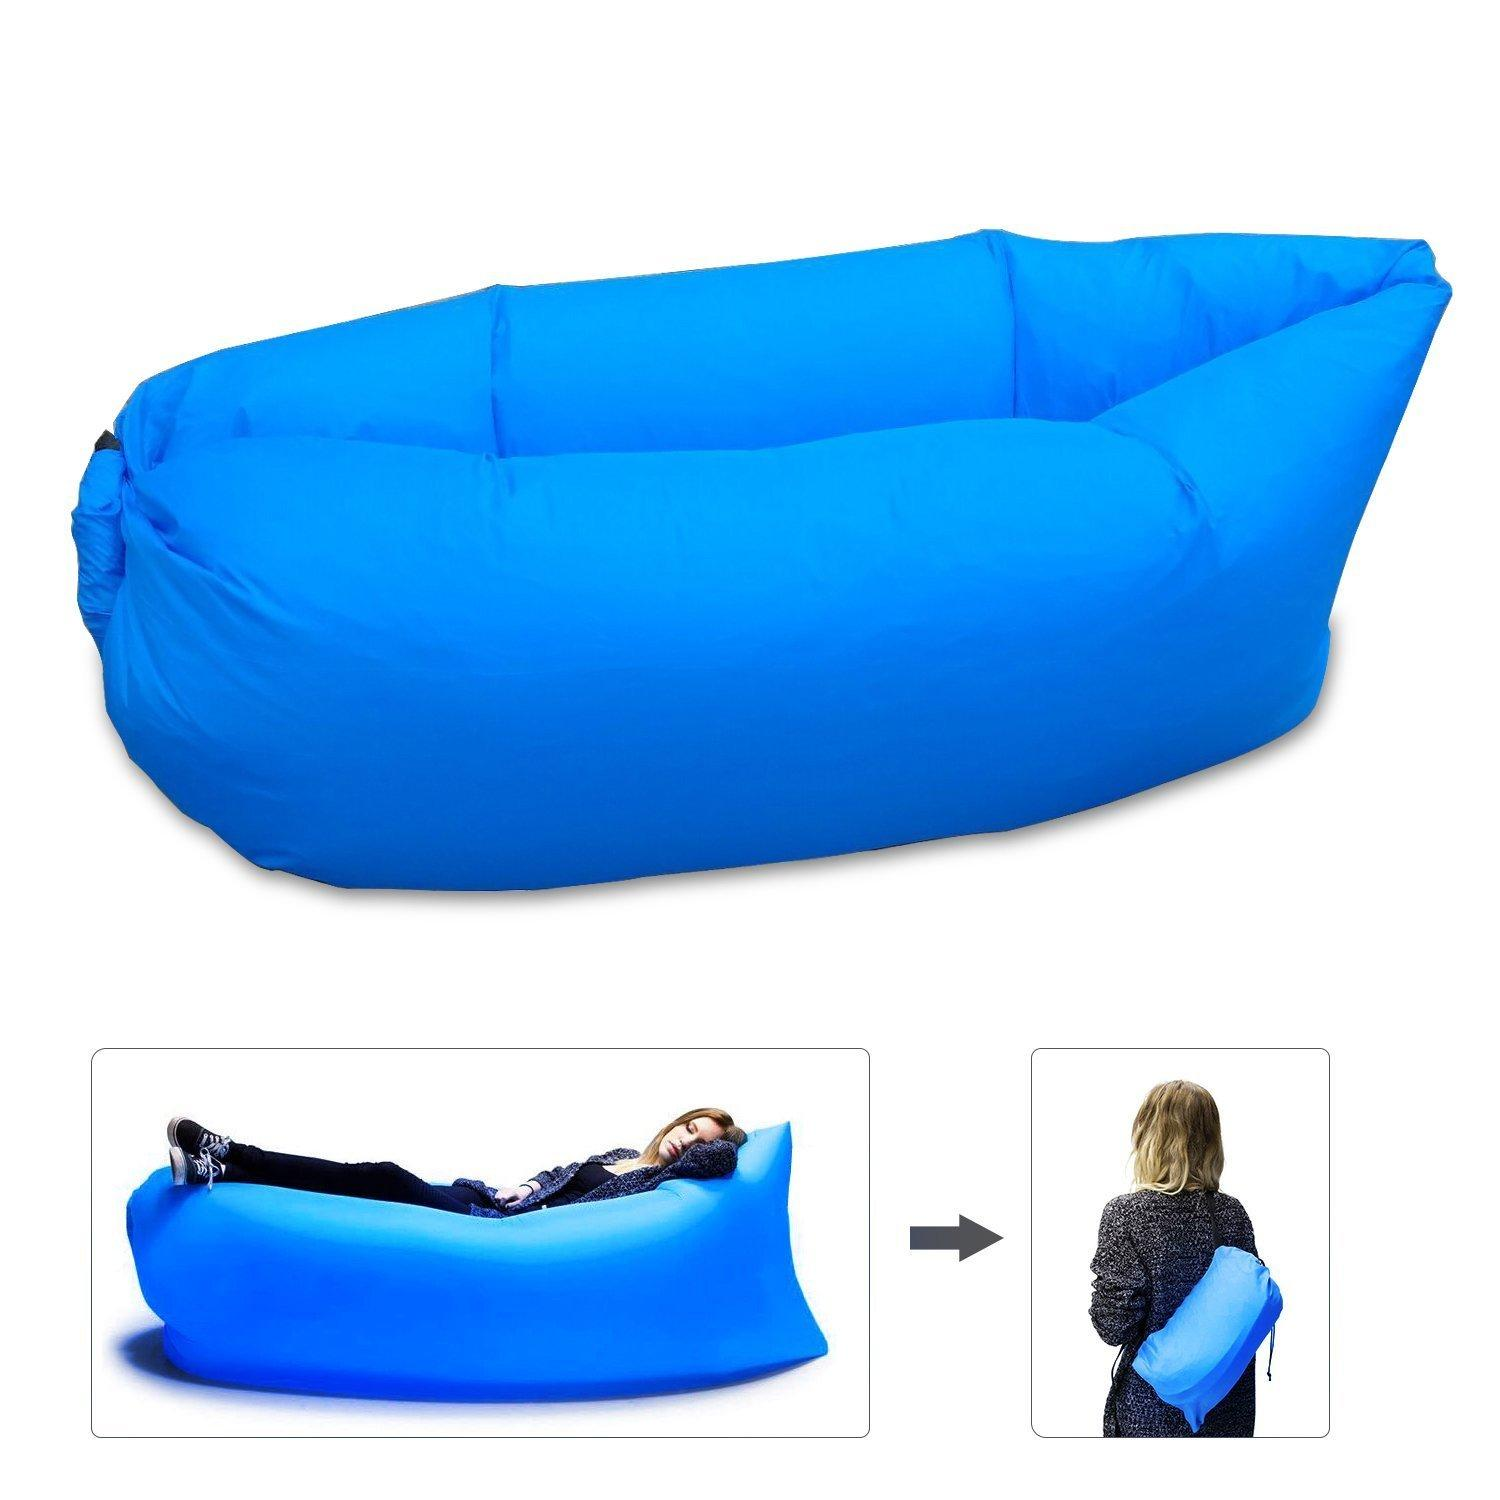 hot sale portable inflatable air bag lounger sofa couch sleeping bed for outdoor beach camping. Black Bedroom Furniture Sets. Home Design Ideas